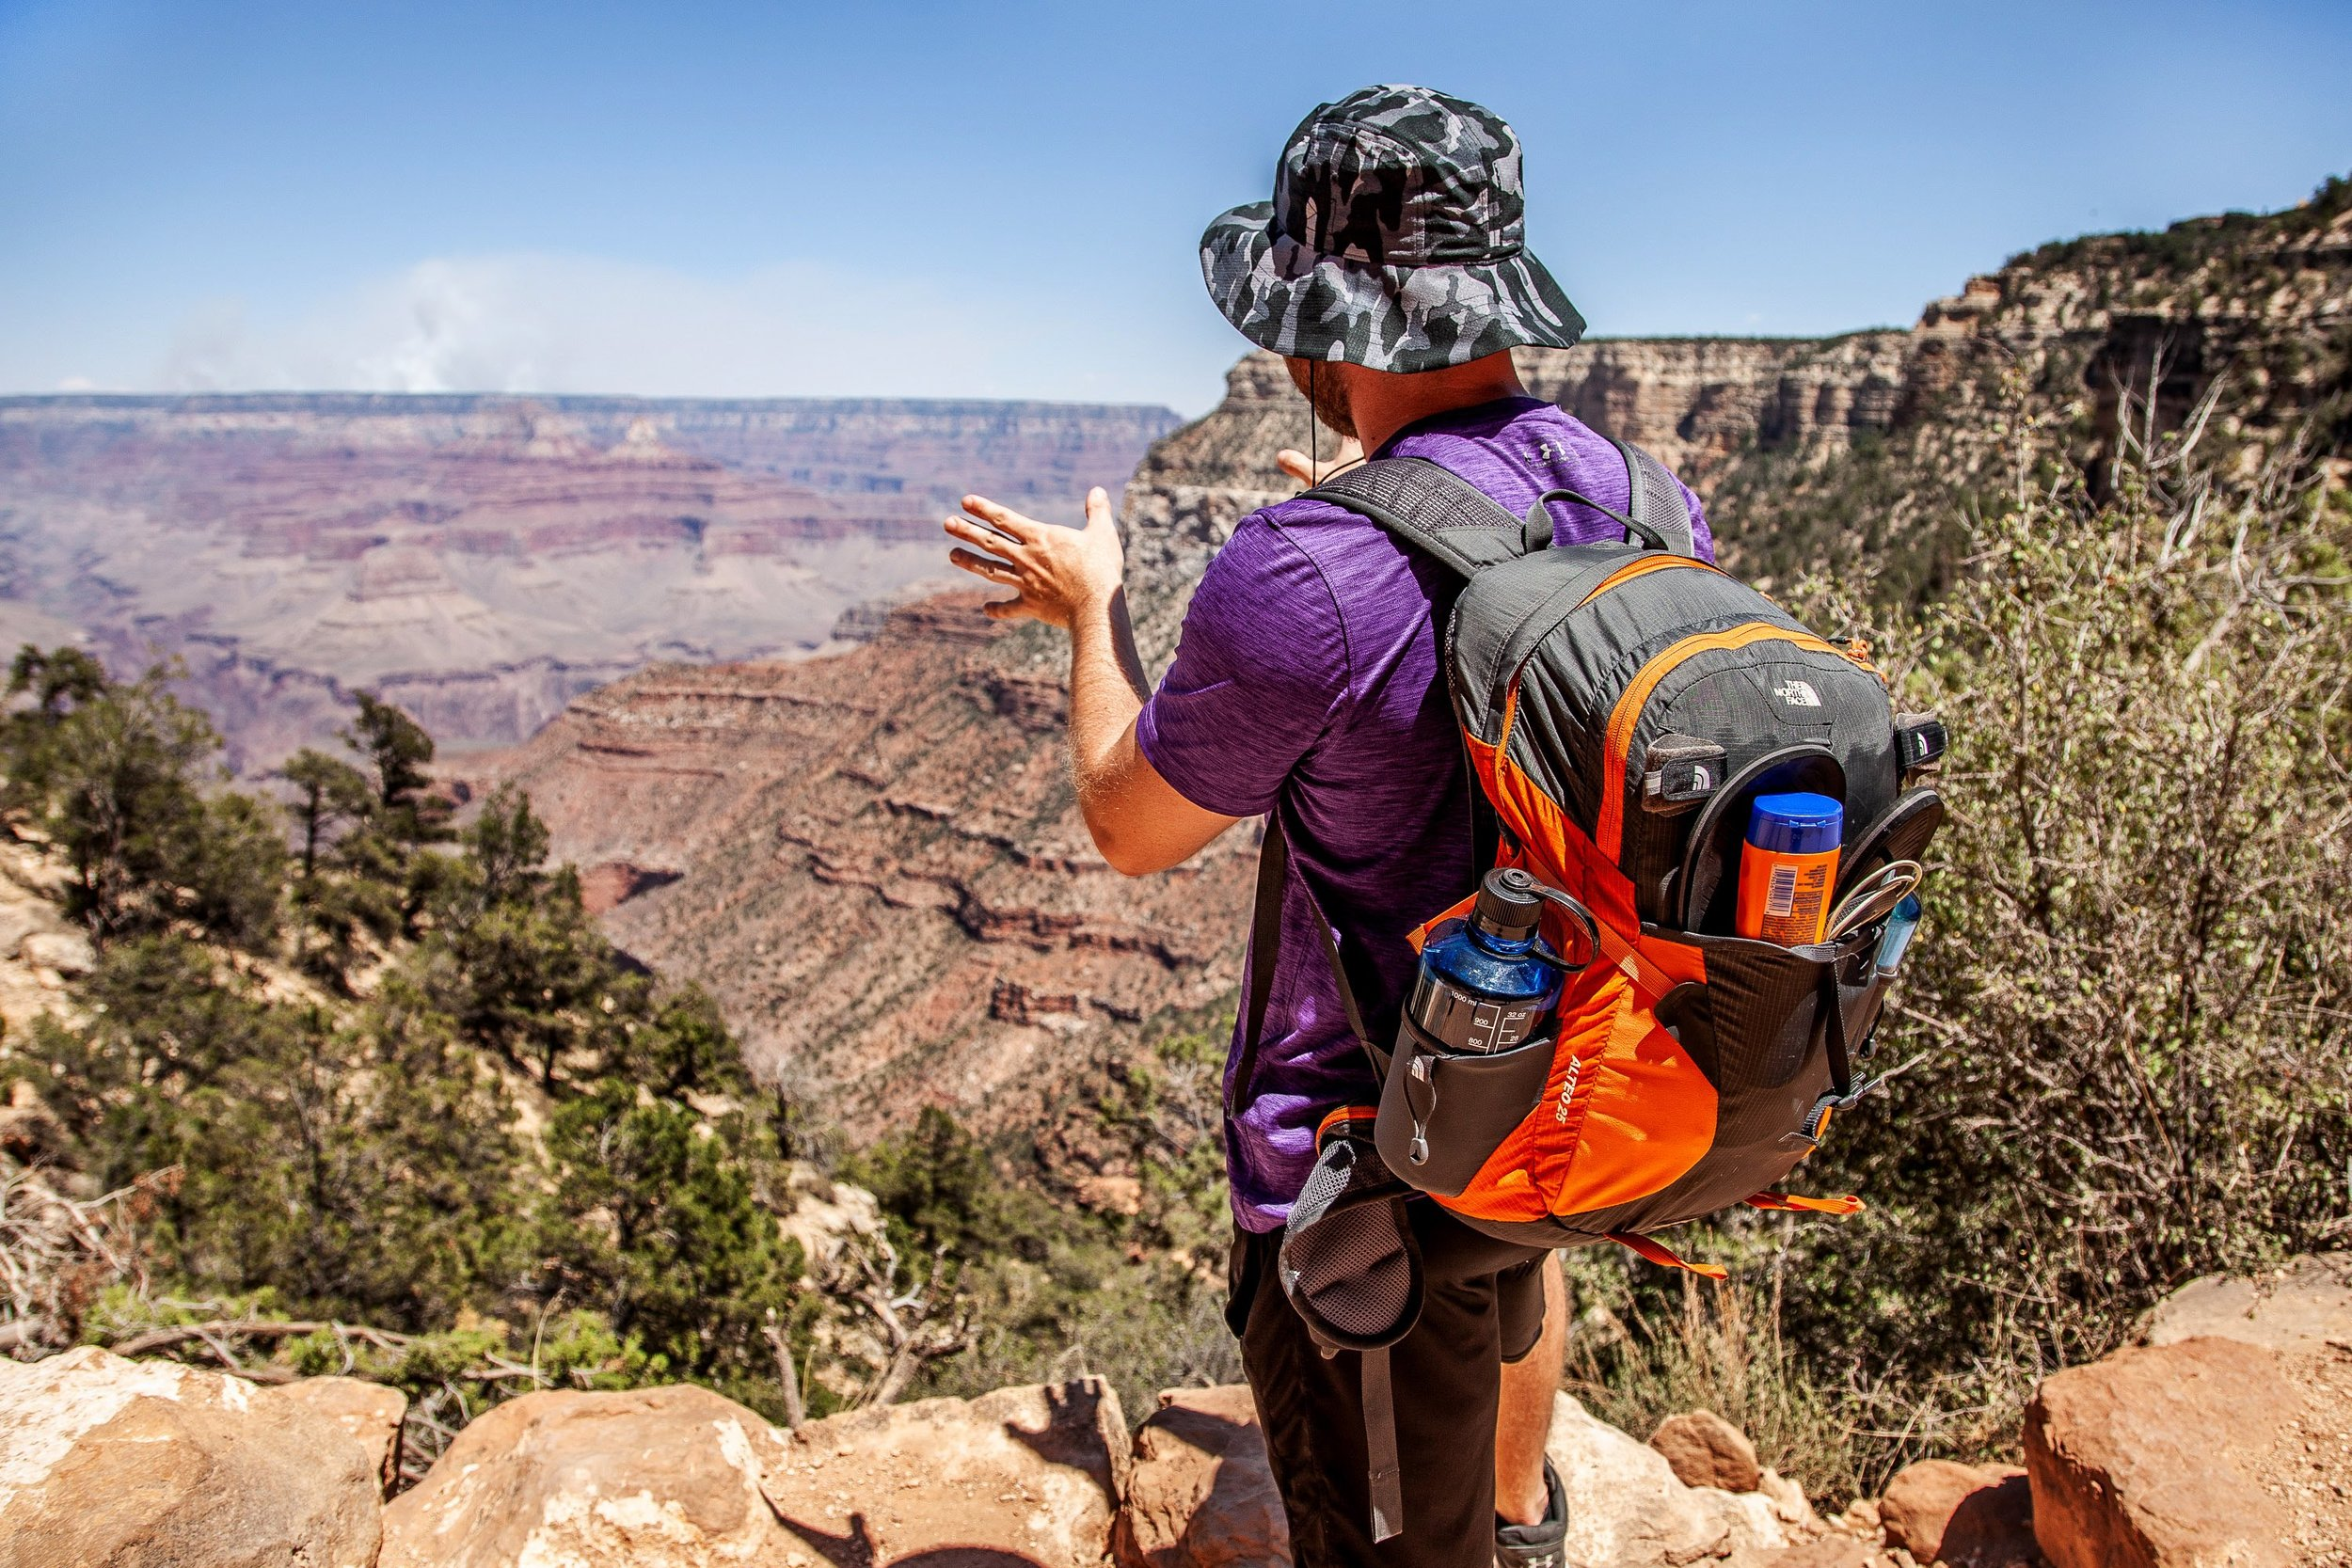 Jack Murphy on our U.S. National Parks 2018 trip